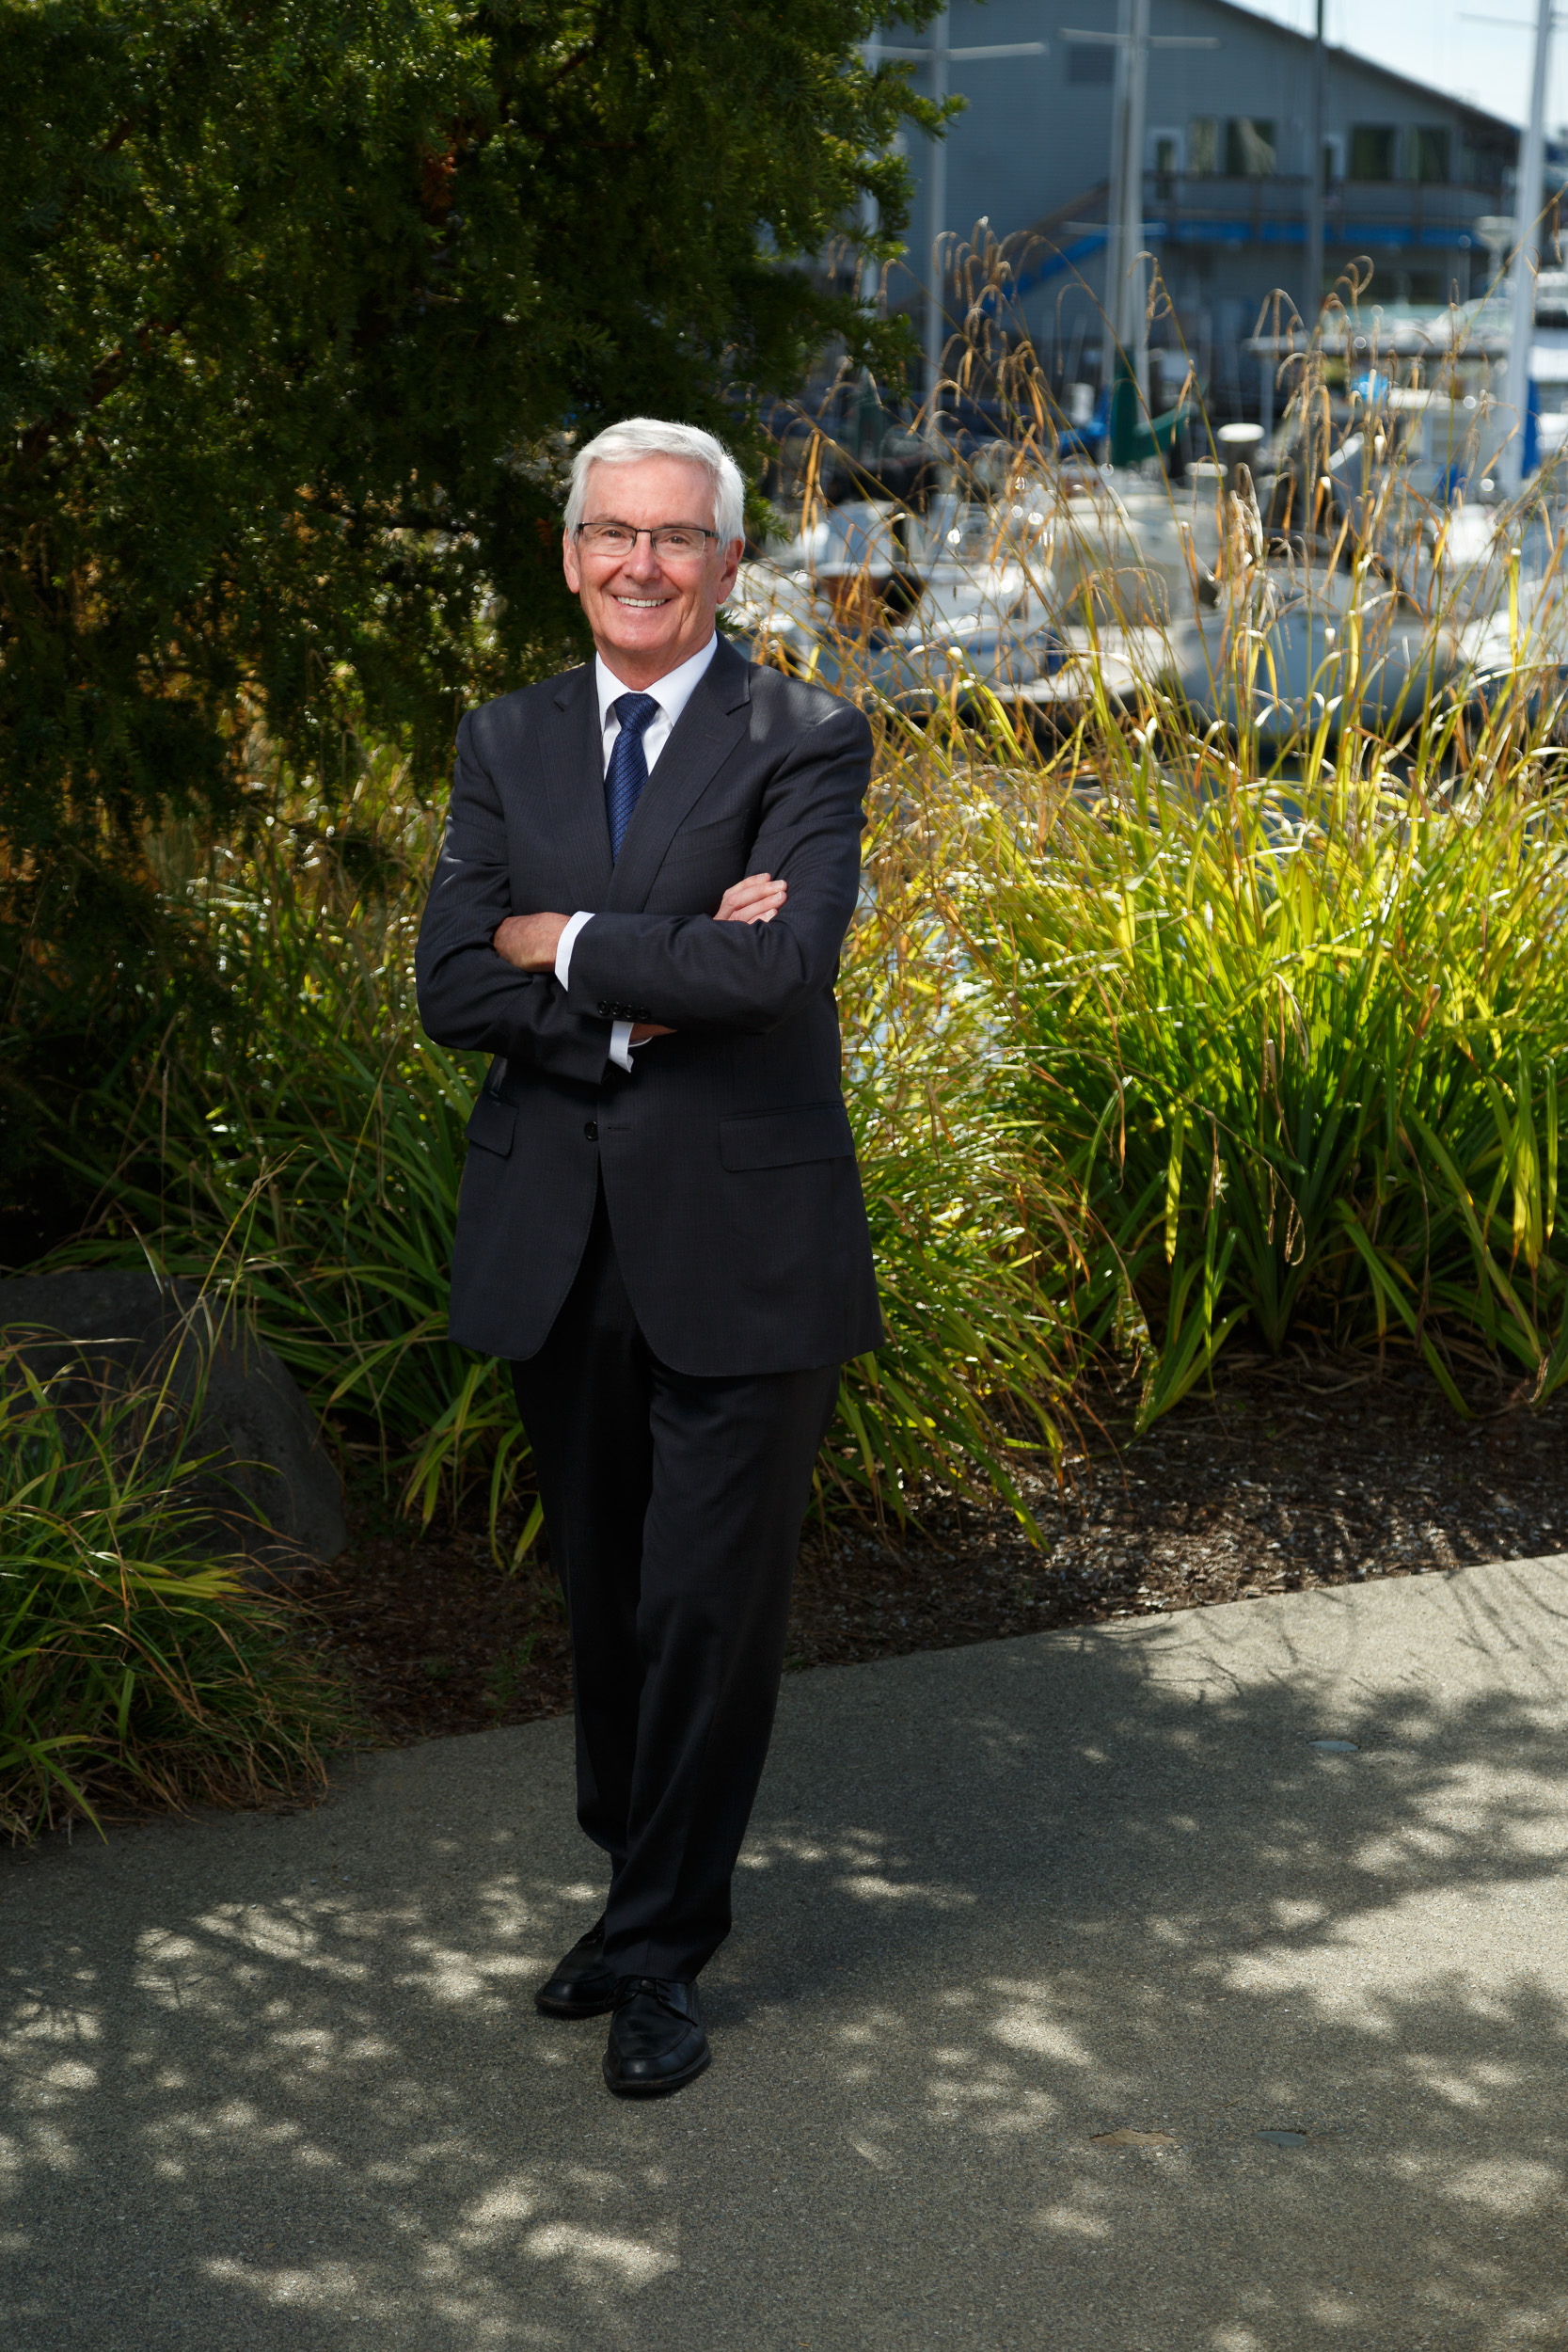 Mick Phillips, co-founder of Phillips Burgess Law Firm